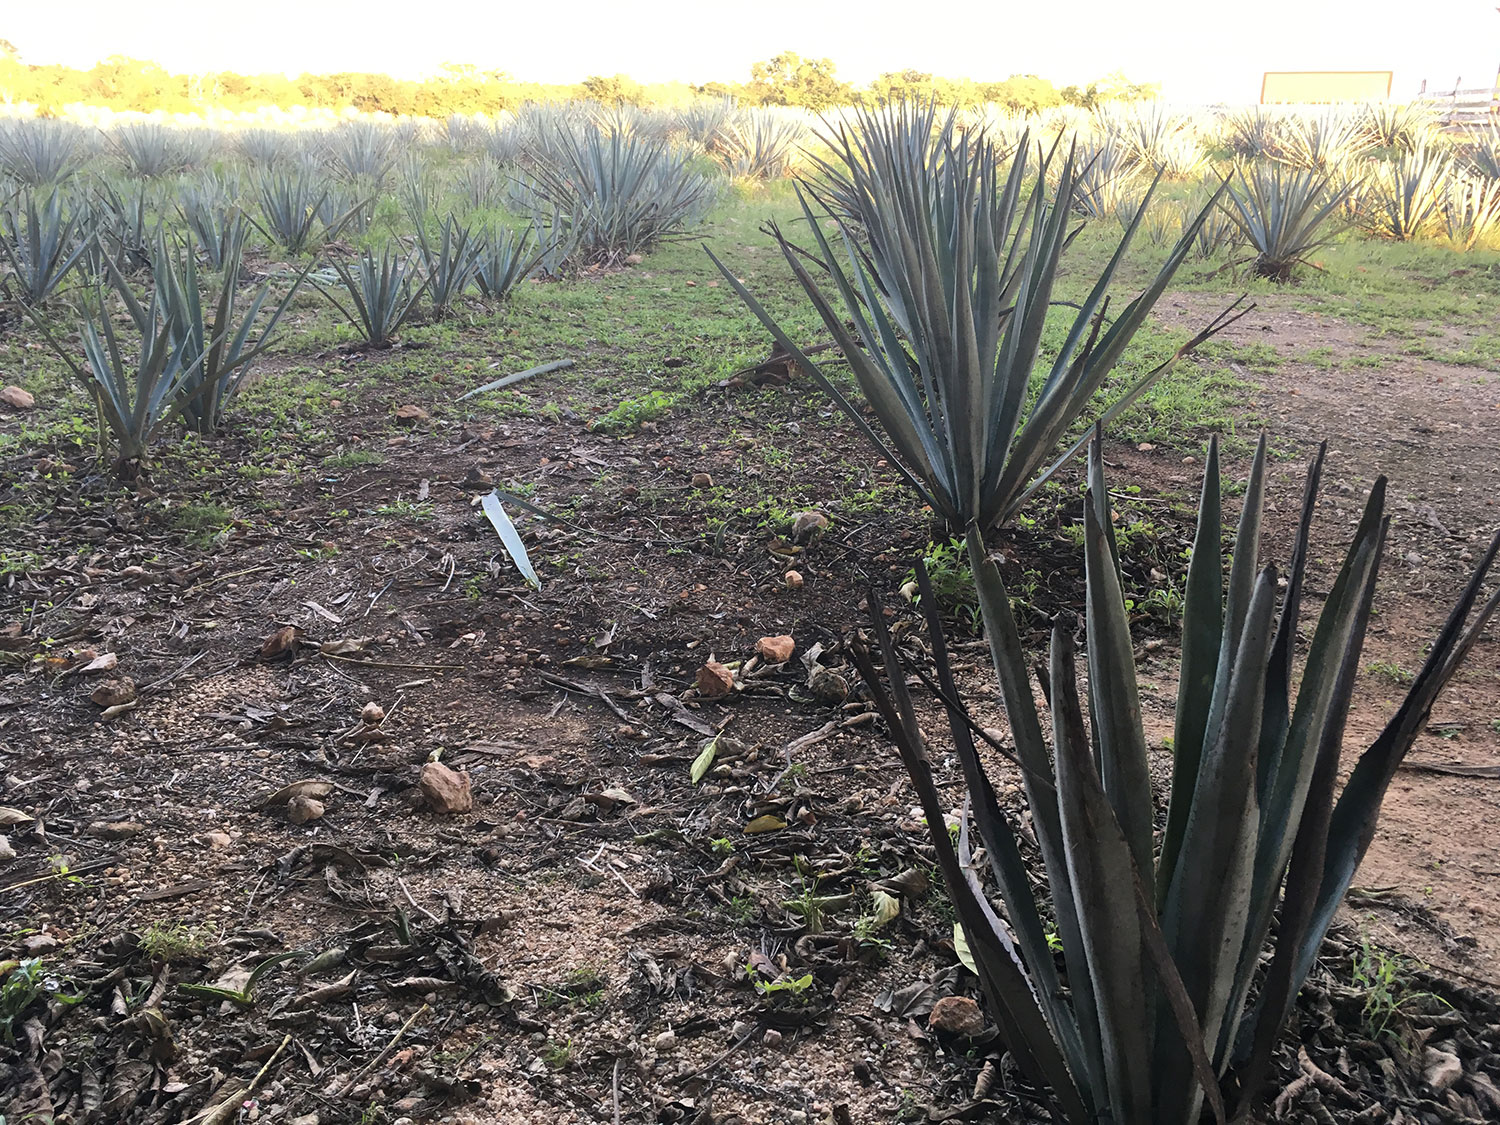 Blue agave fields.